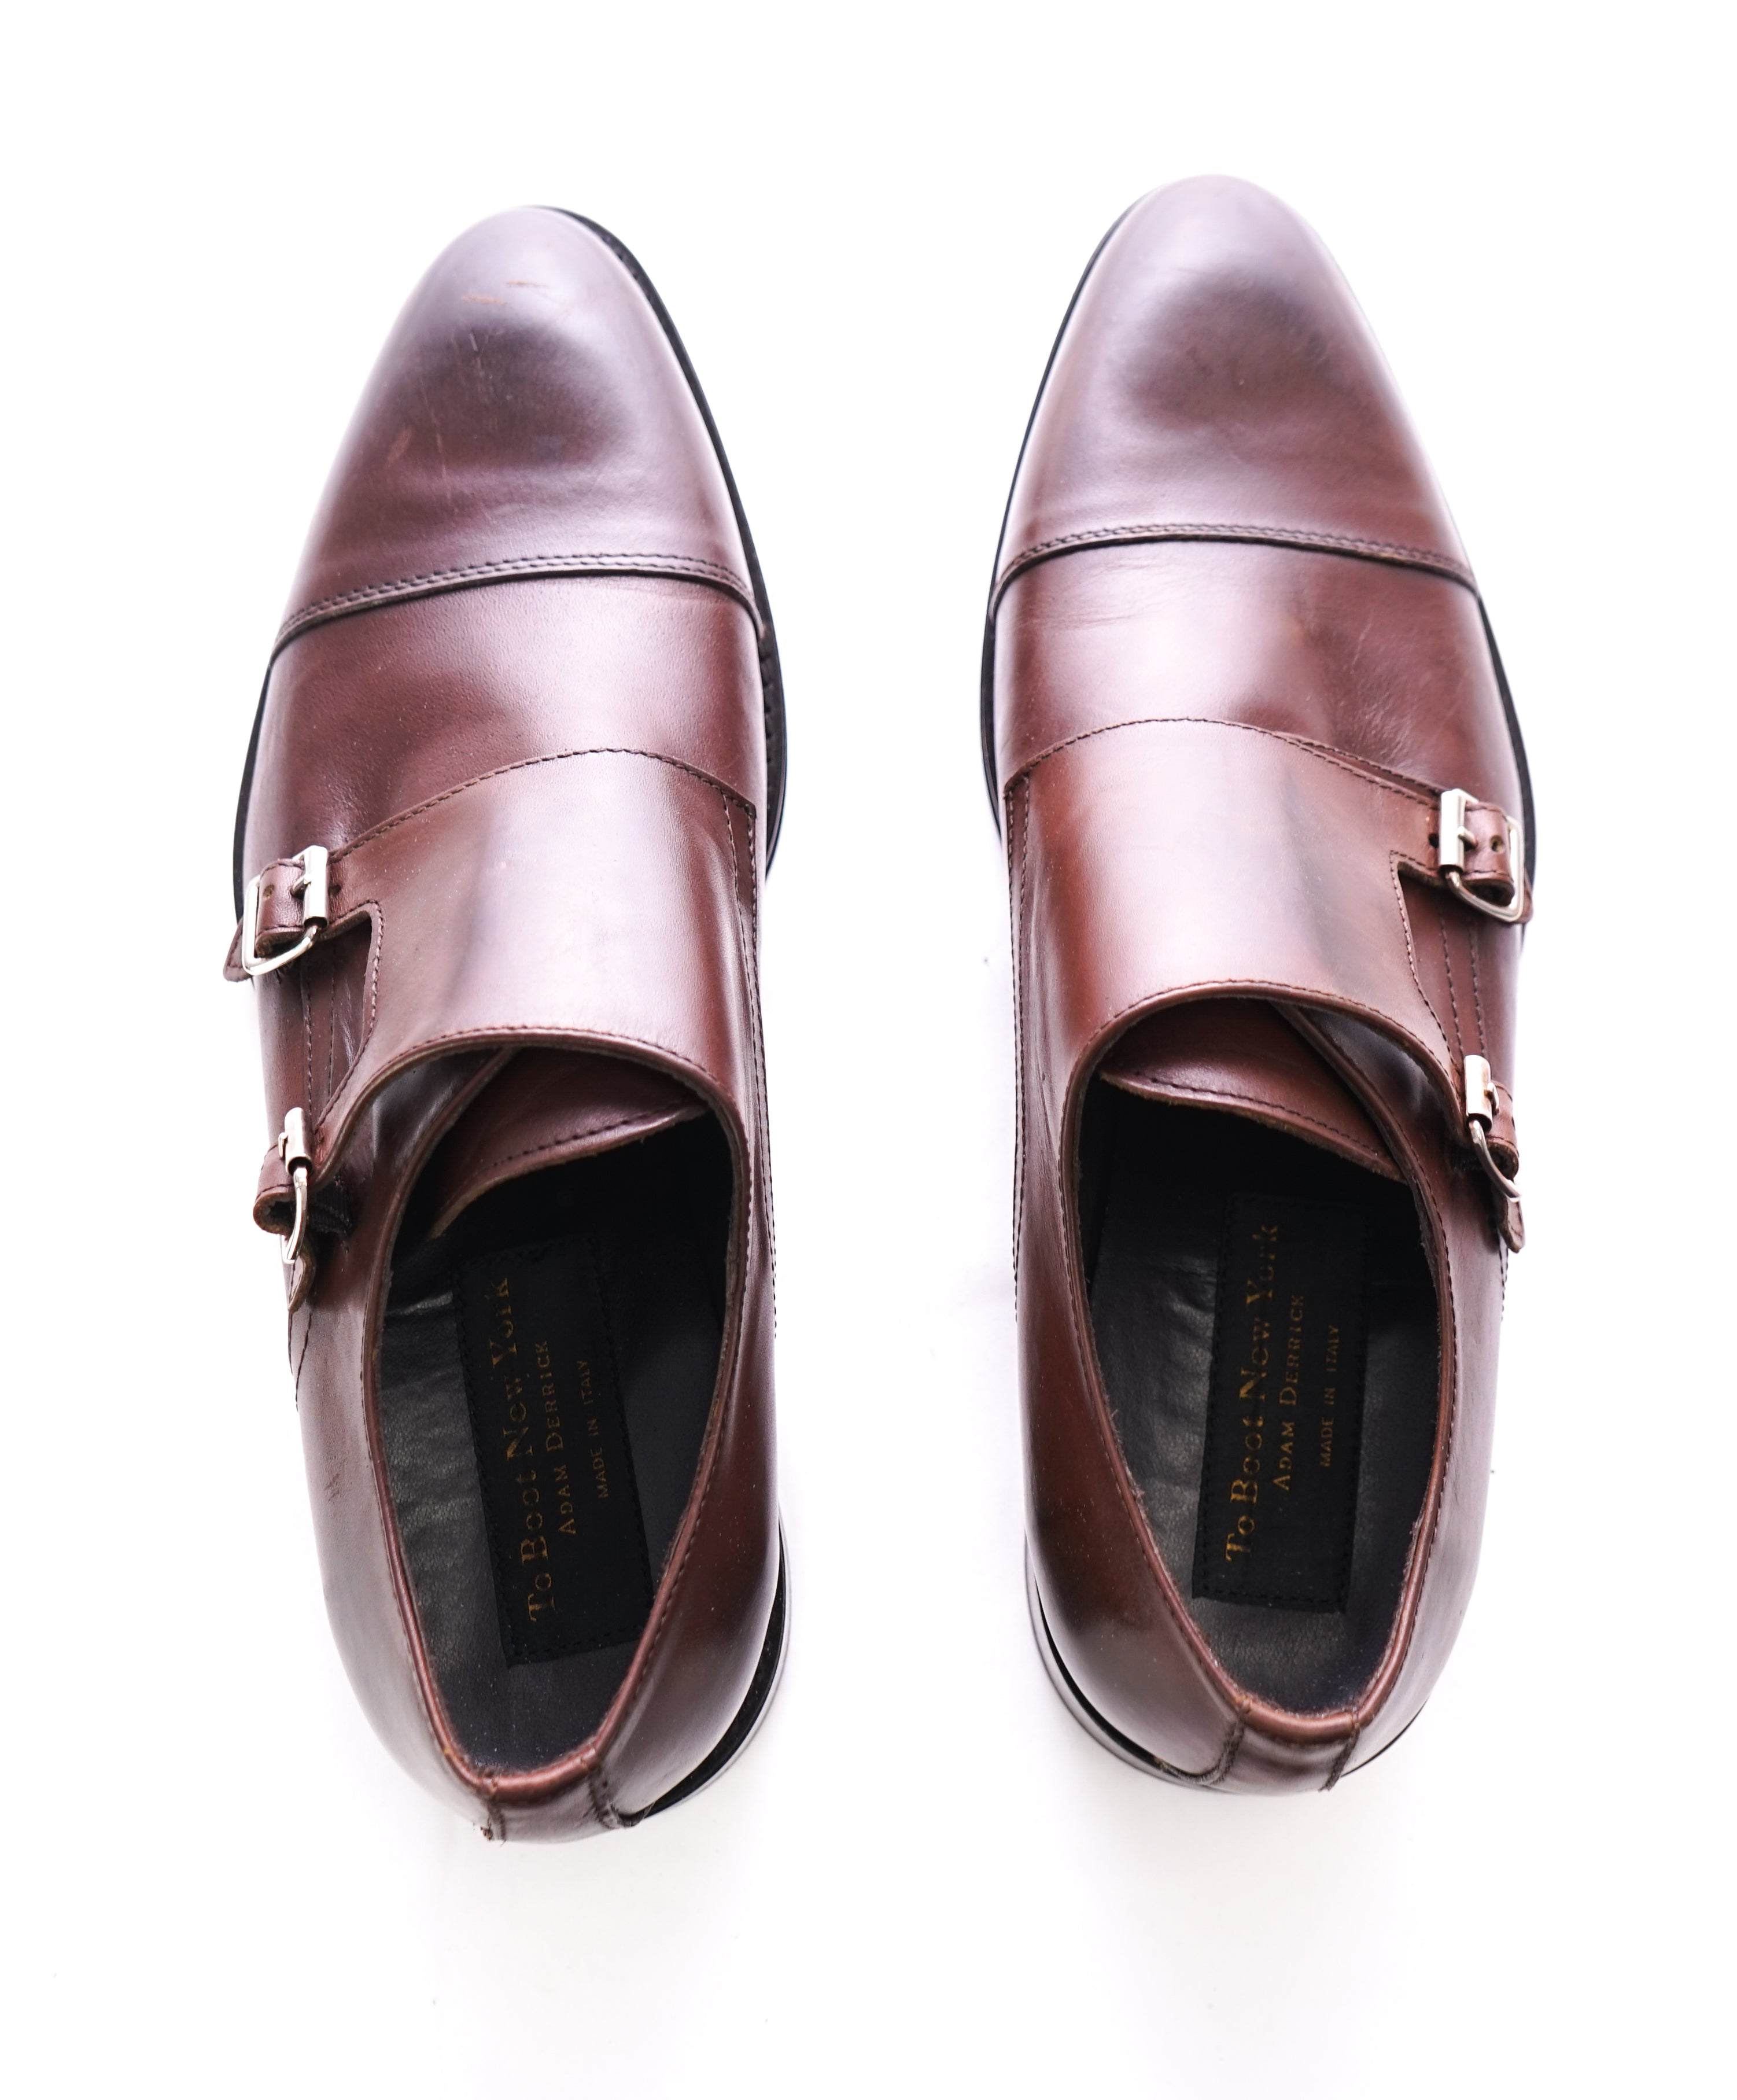 TO BOOT NEW YORK - Dark Brown Double Monk Strap Cap Toe Loafers - 10.5